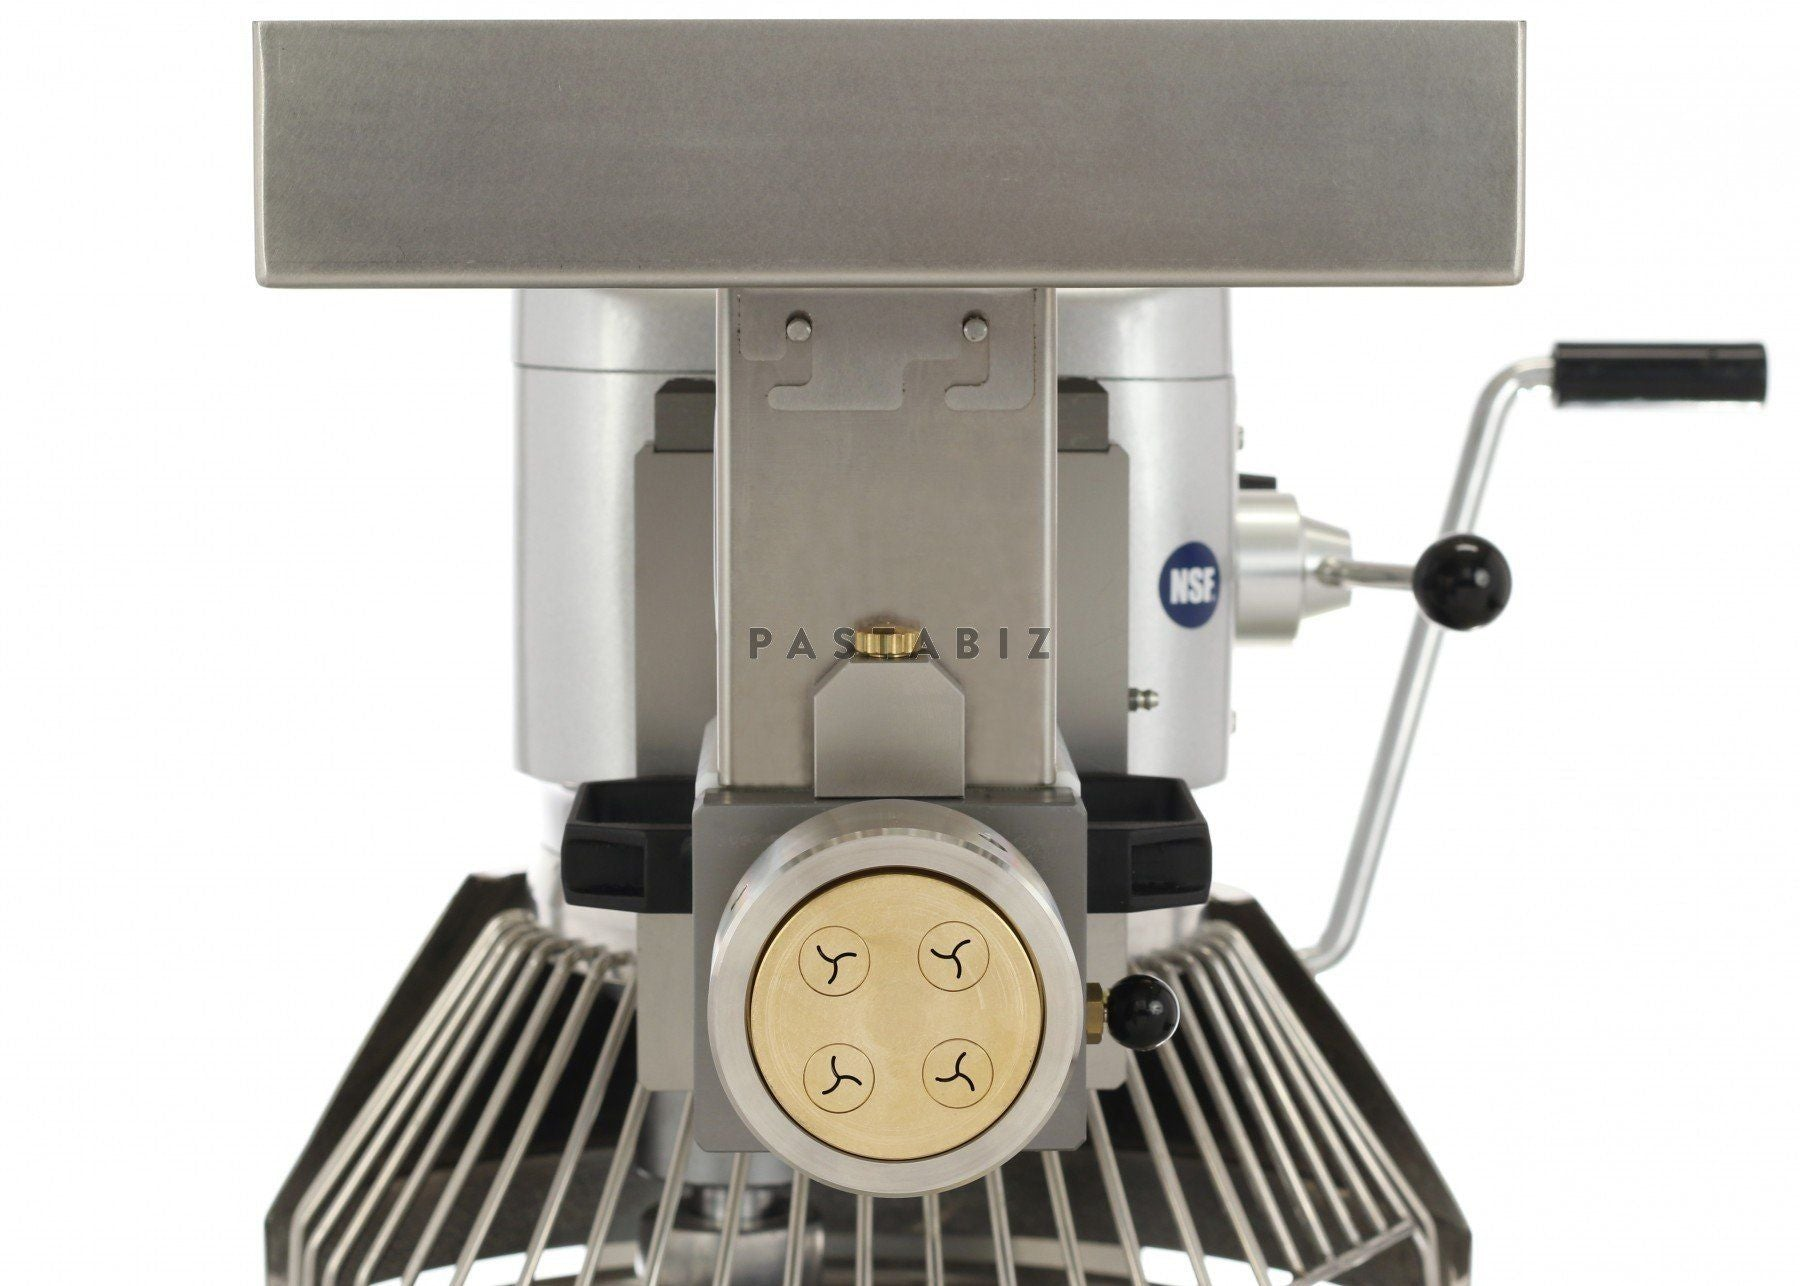 "<img src=""https://cdn.shopify.com/s/files/1/0084/6109/0875/products/PEXT-12.jpg?v=1565884836"" alt=""Chloe Pasta Extruder Attachment for #12 Mixer Hub"">"